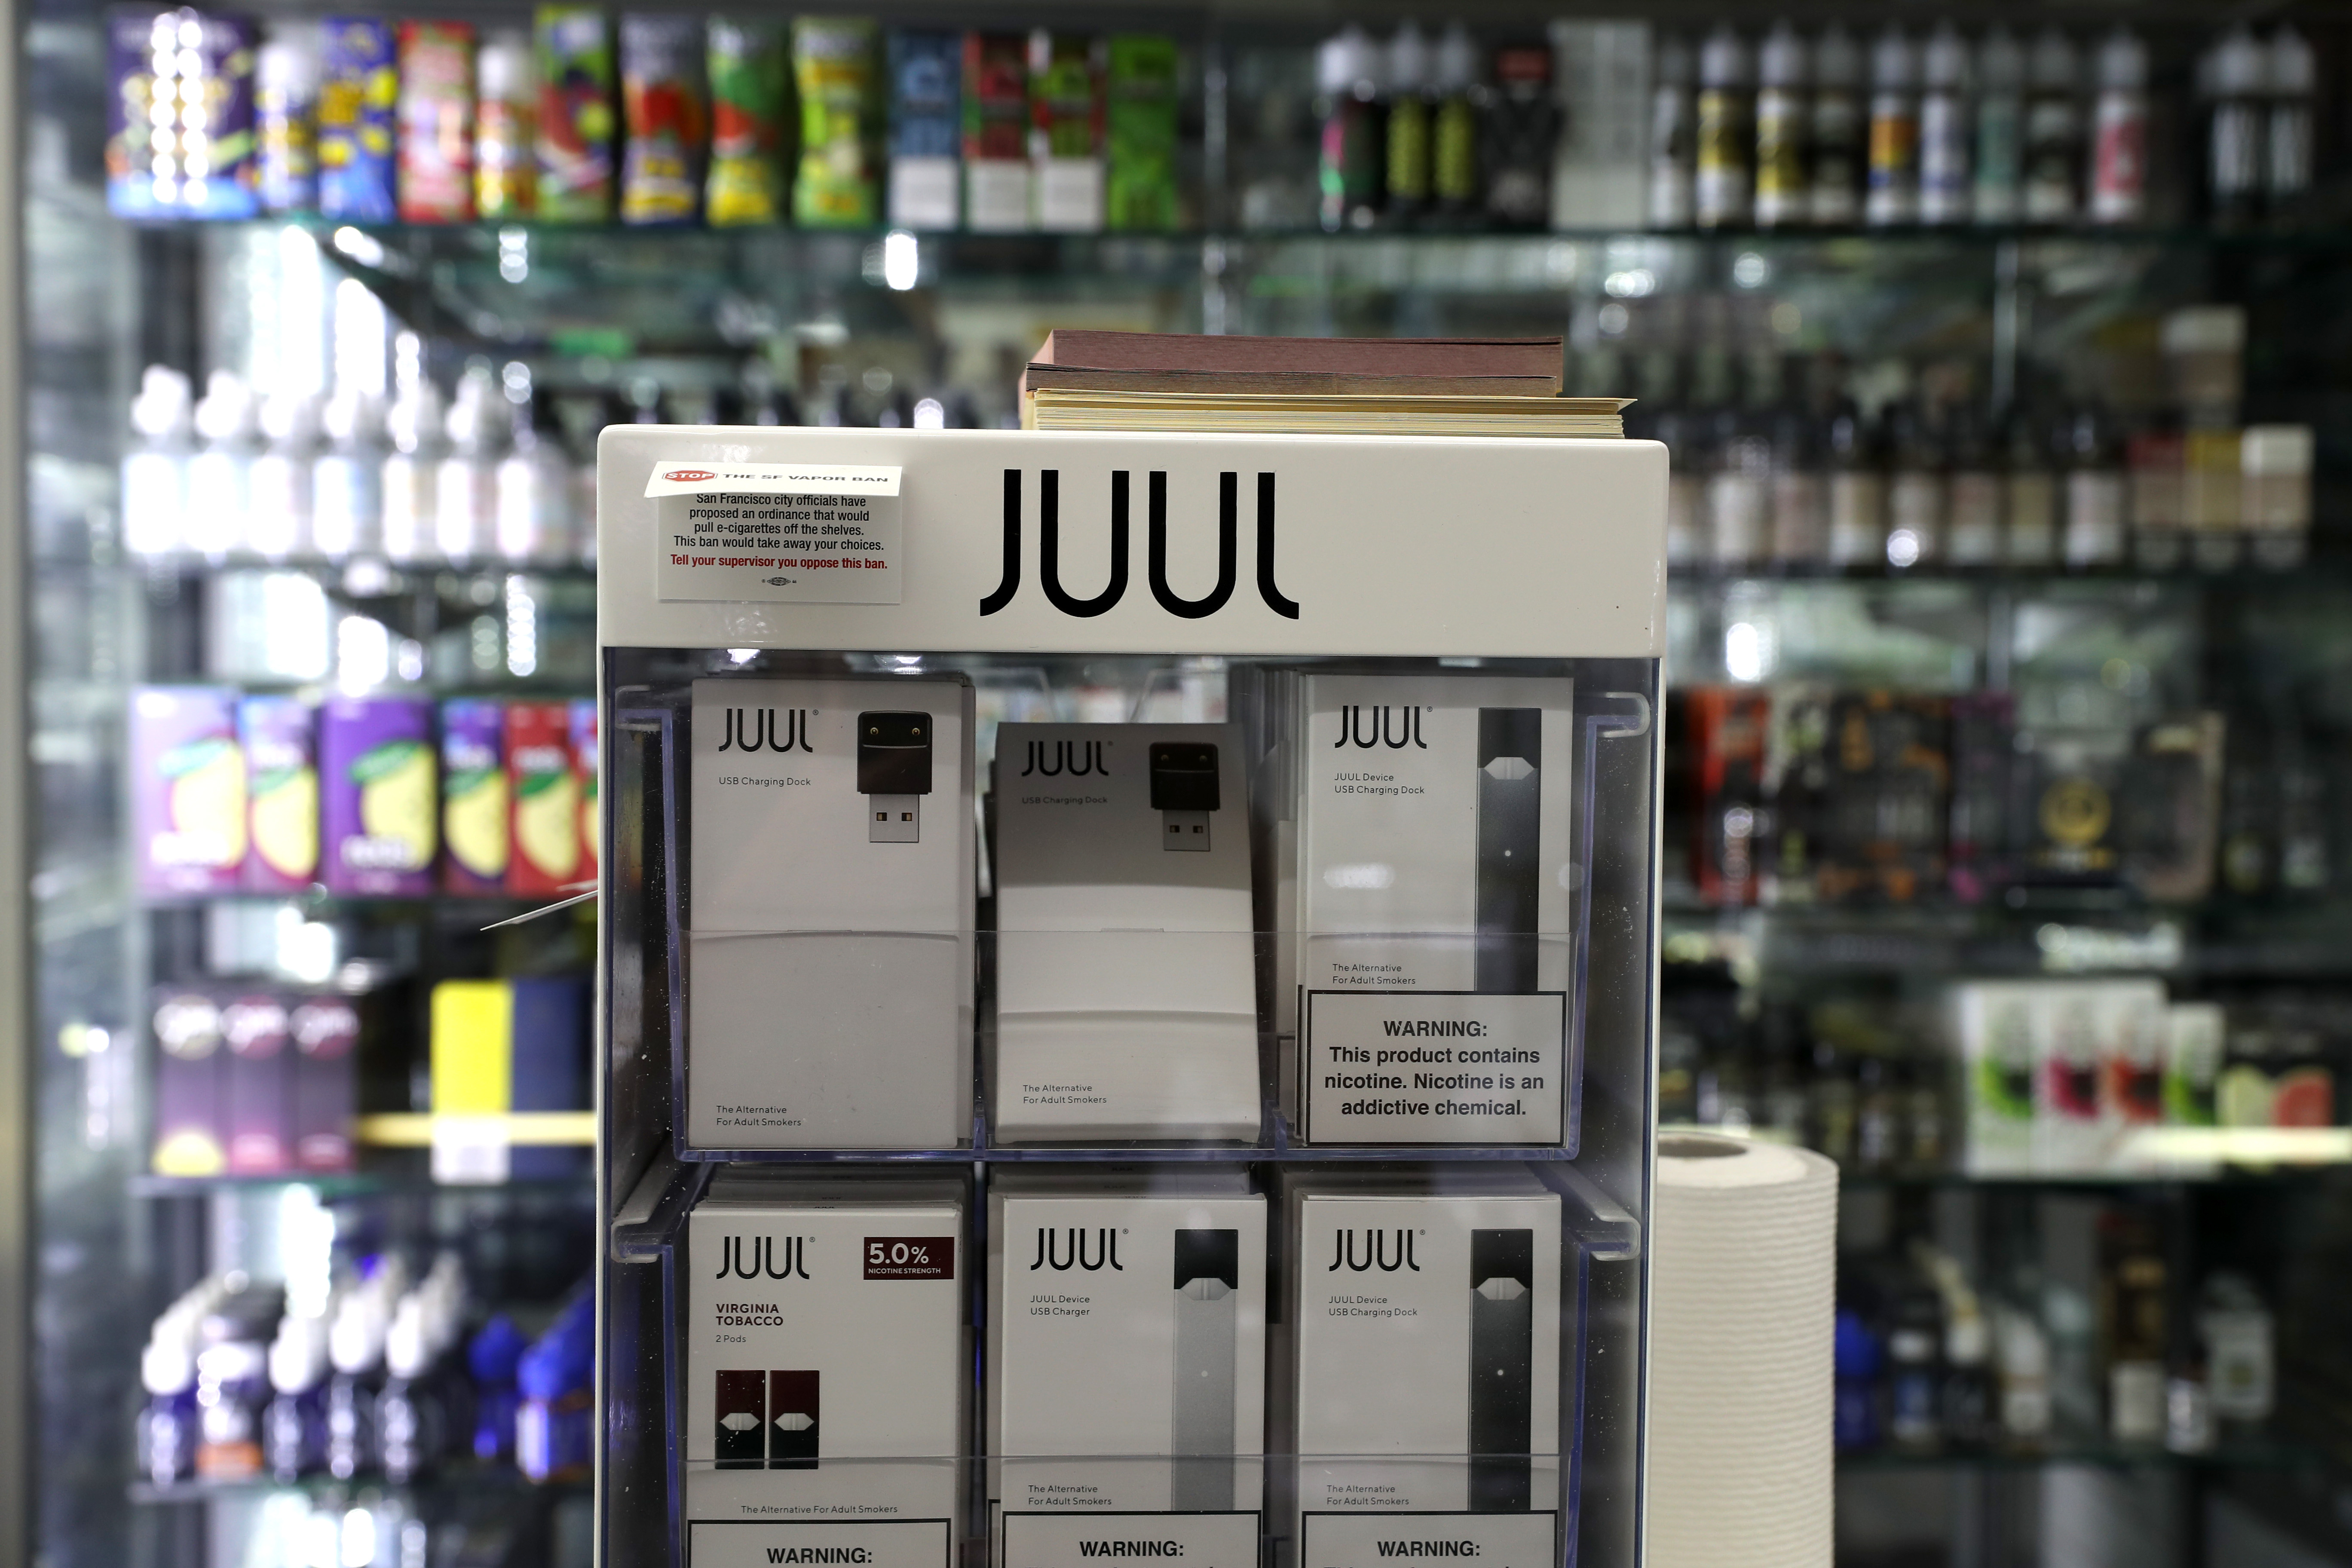 E-Cigarettes made by Juul are displayed at Smoke and Gift Shop on June 25, 2019 in San Francisco, California. (Photo by Justin Sullivan/Getty Images)